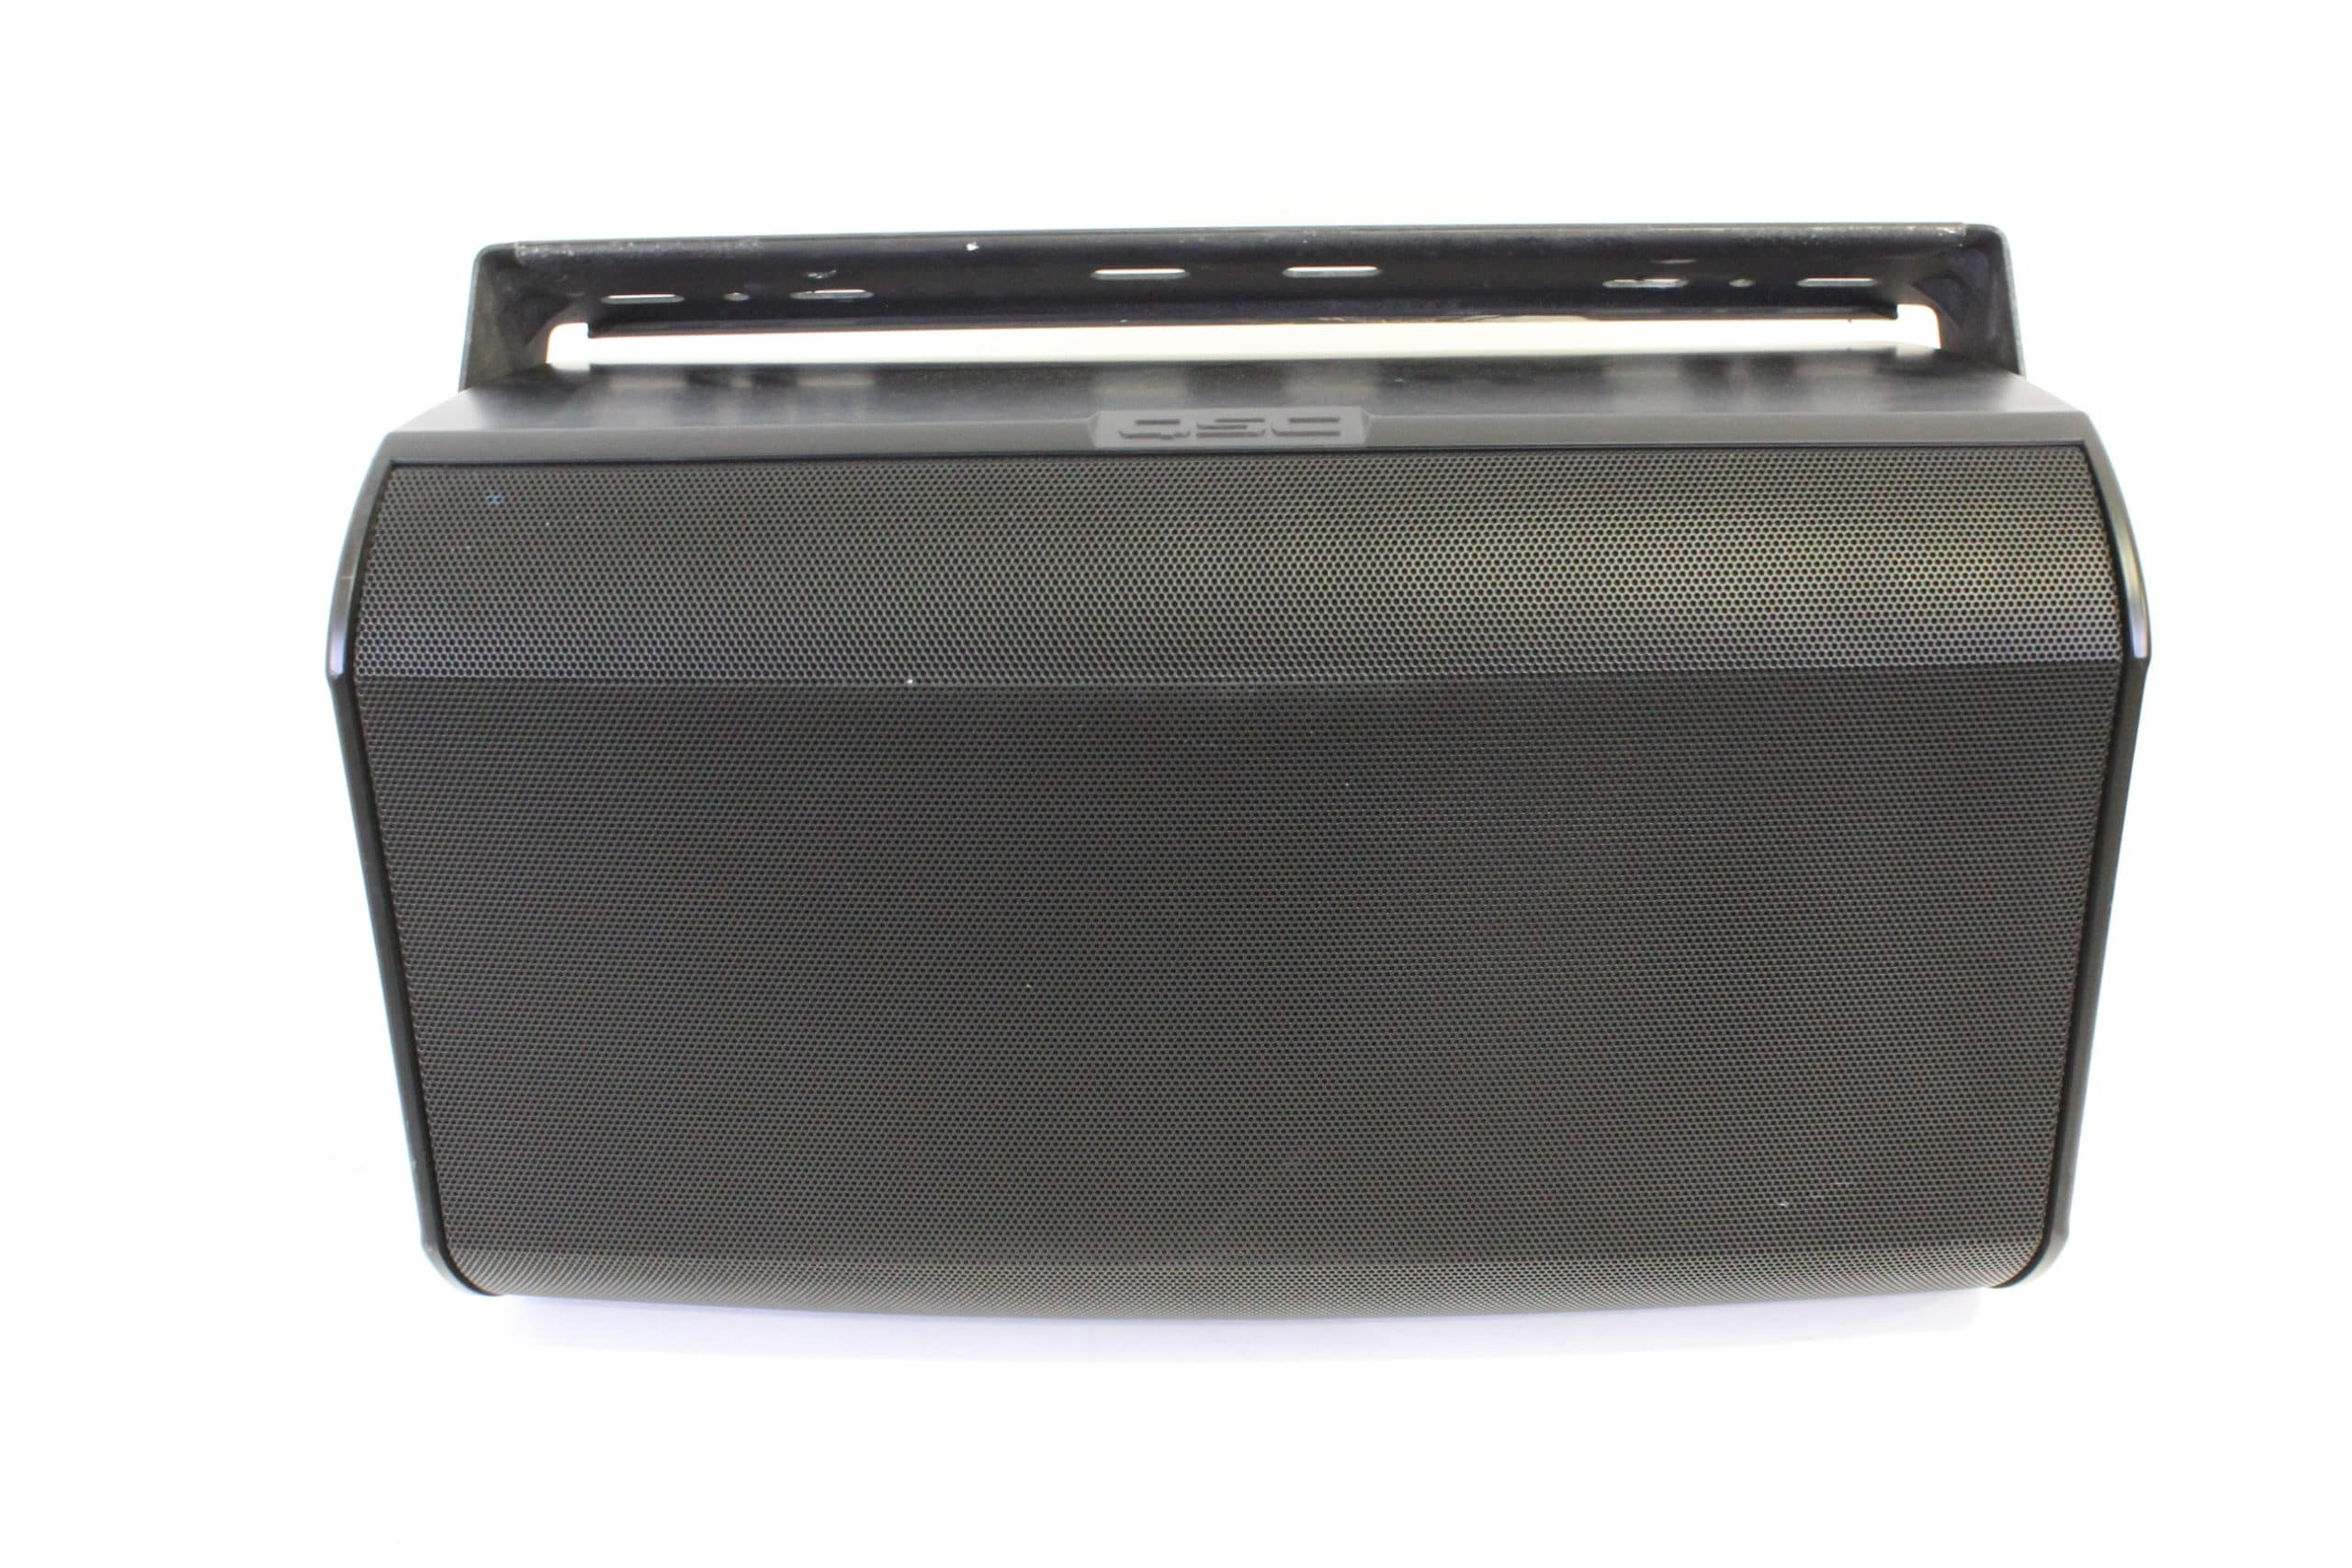 qsc-ad-s112sw-small-format-surface-mount-subwoofer main